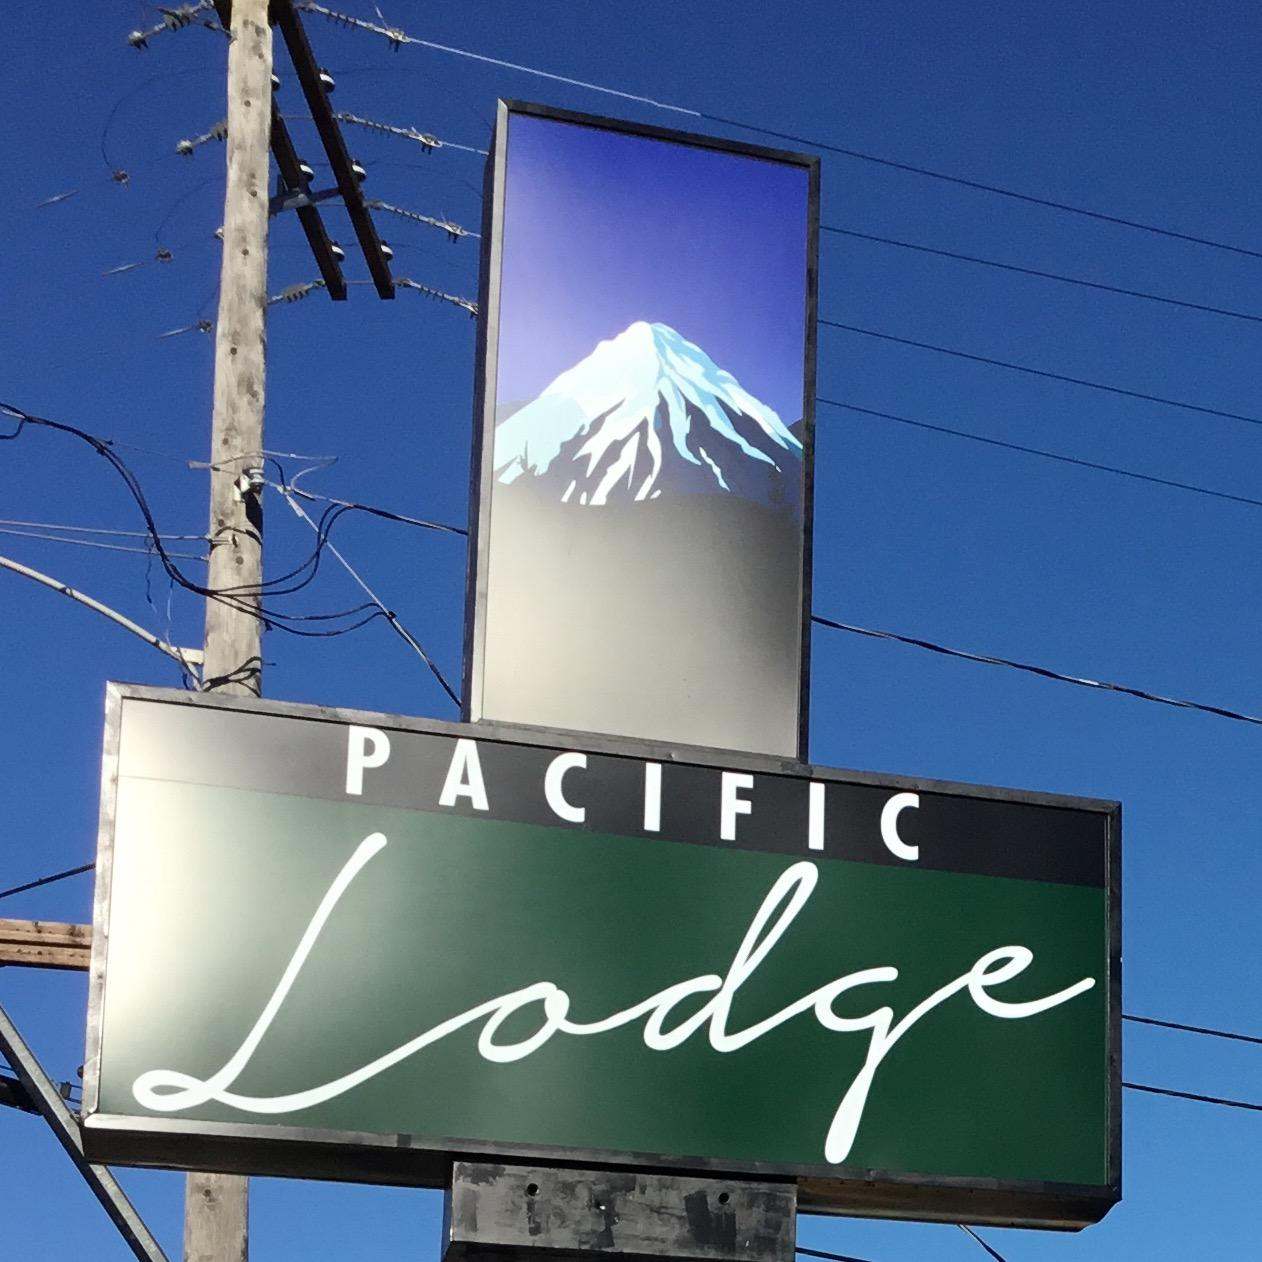 Pacific Lodge - Tacoma, WA - Hotels & Motels